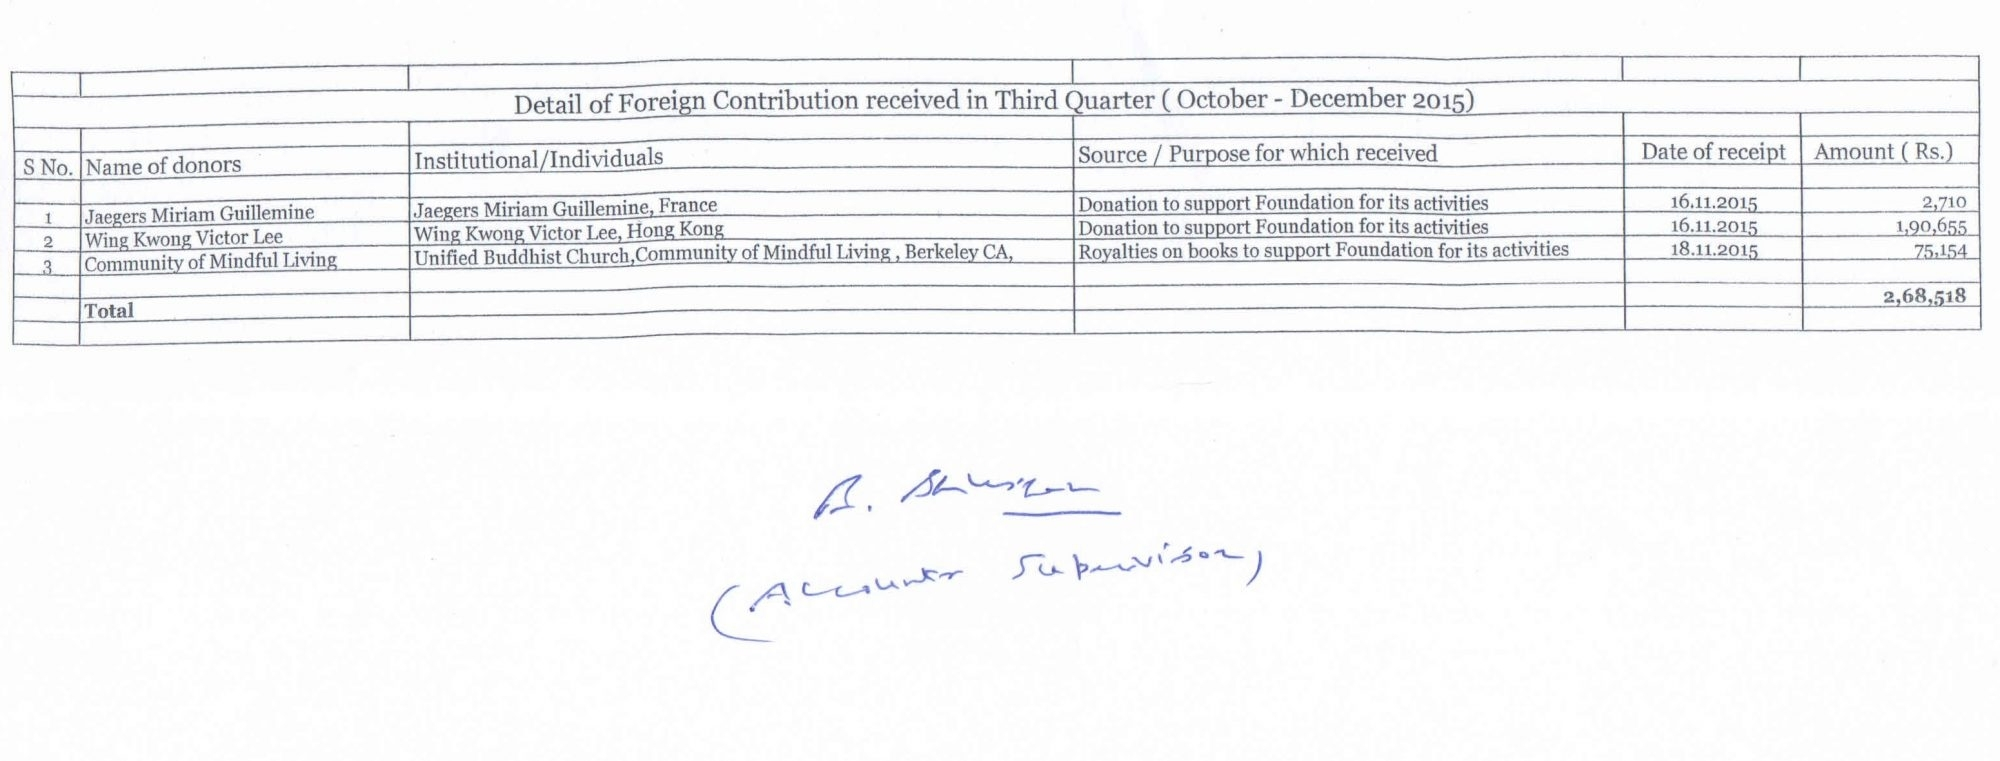 Statutory Disclosure As Per Goi-Fcra - The Foundation For